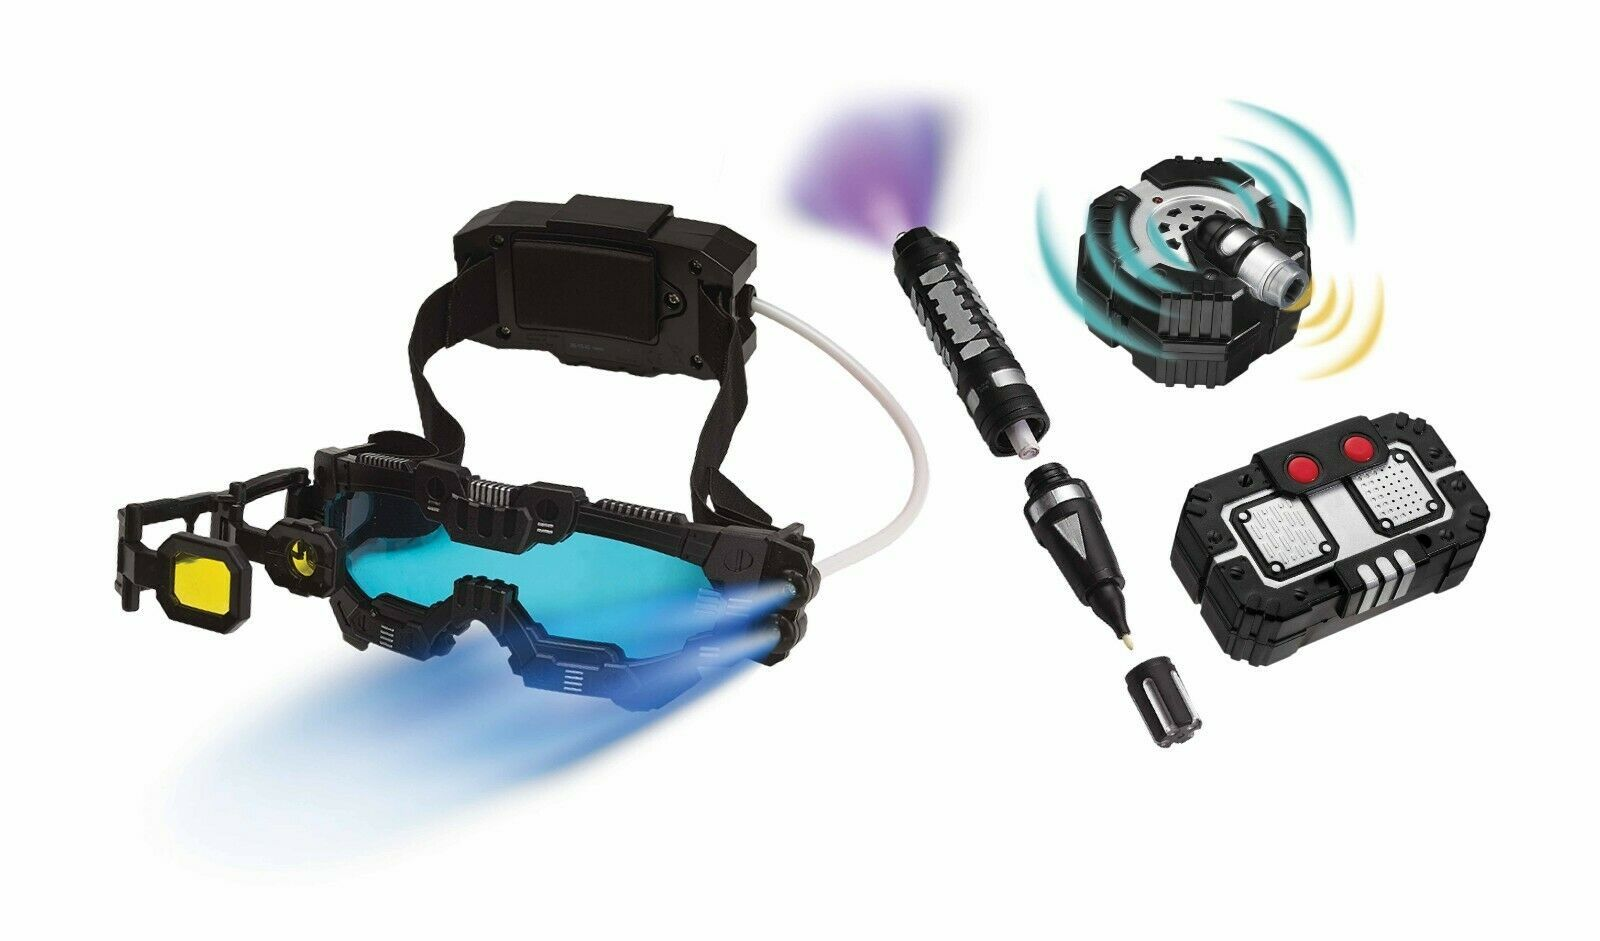 Spy X Night Ranger Set/Mission Goggles/Motion Alarm/Voice Disguise/Invisible Ink